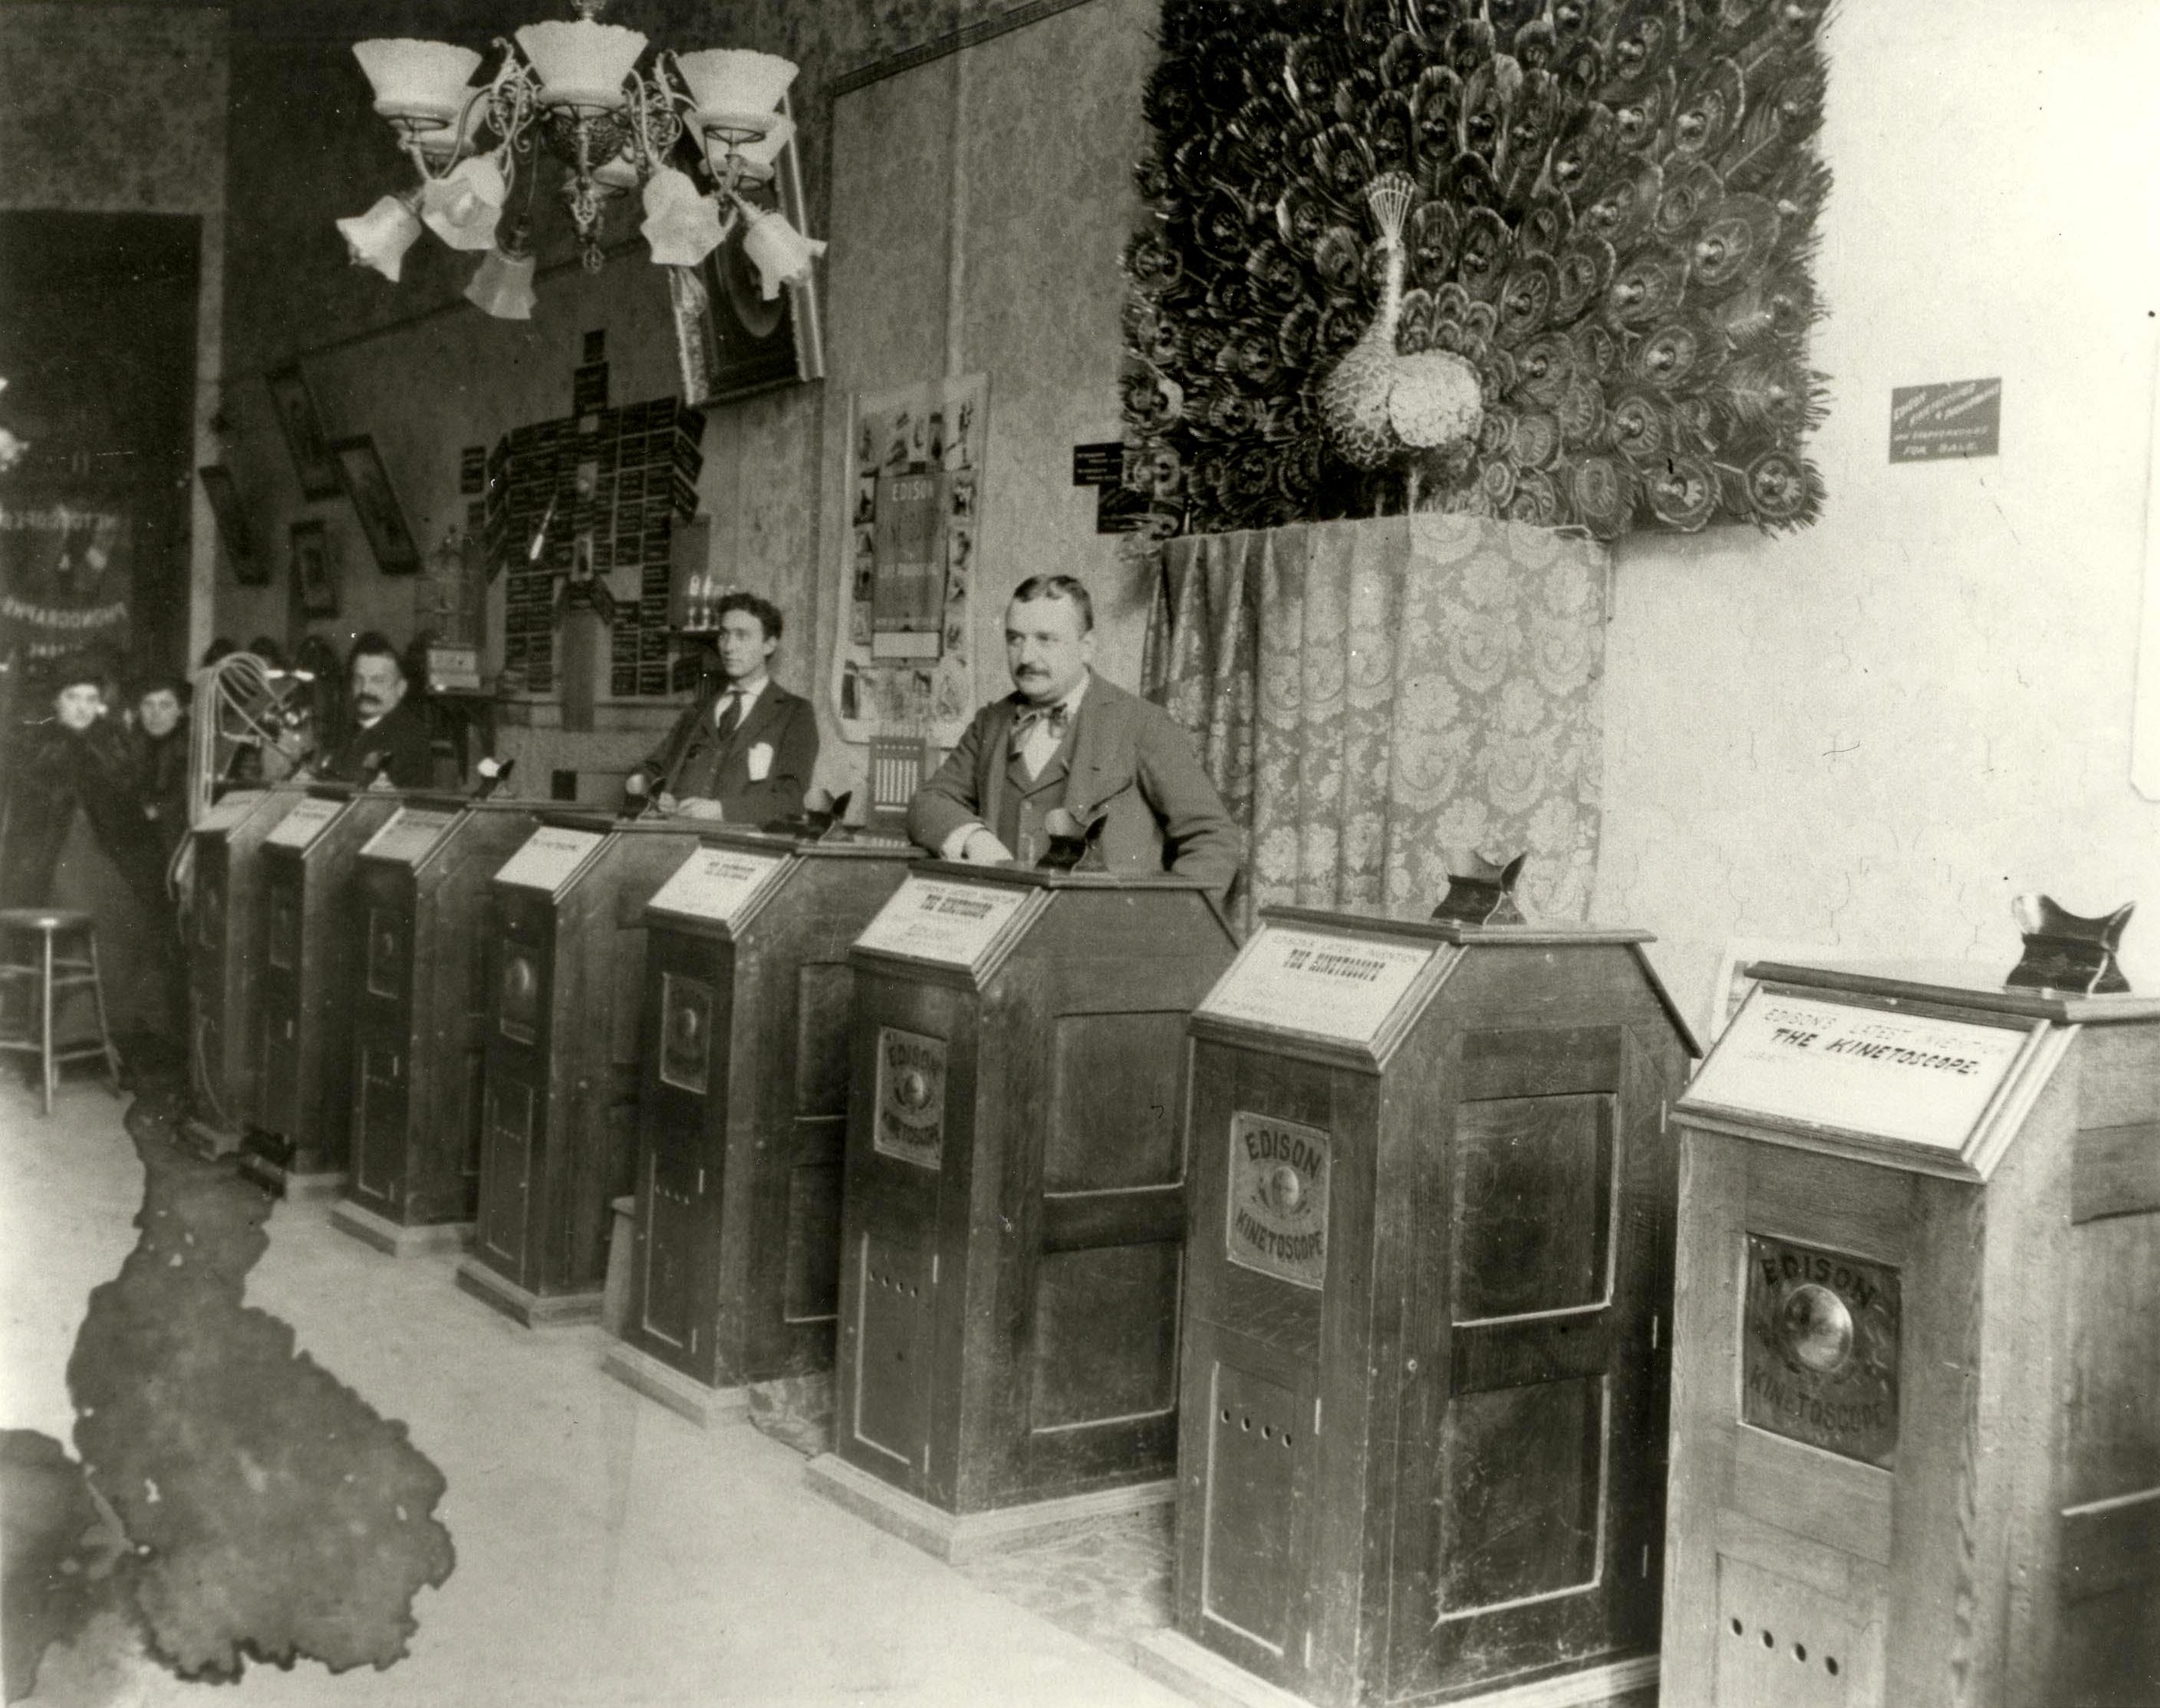 San Francisco Kinetoscope Parlor, 1895